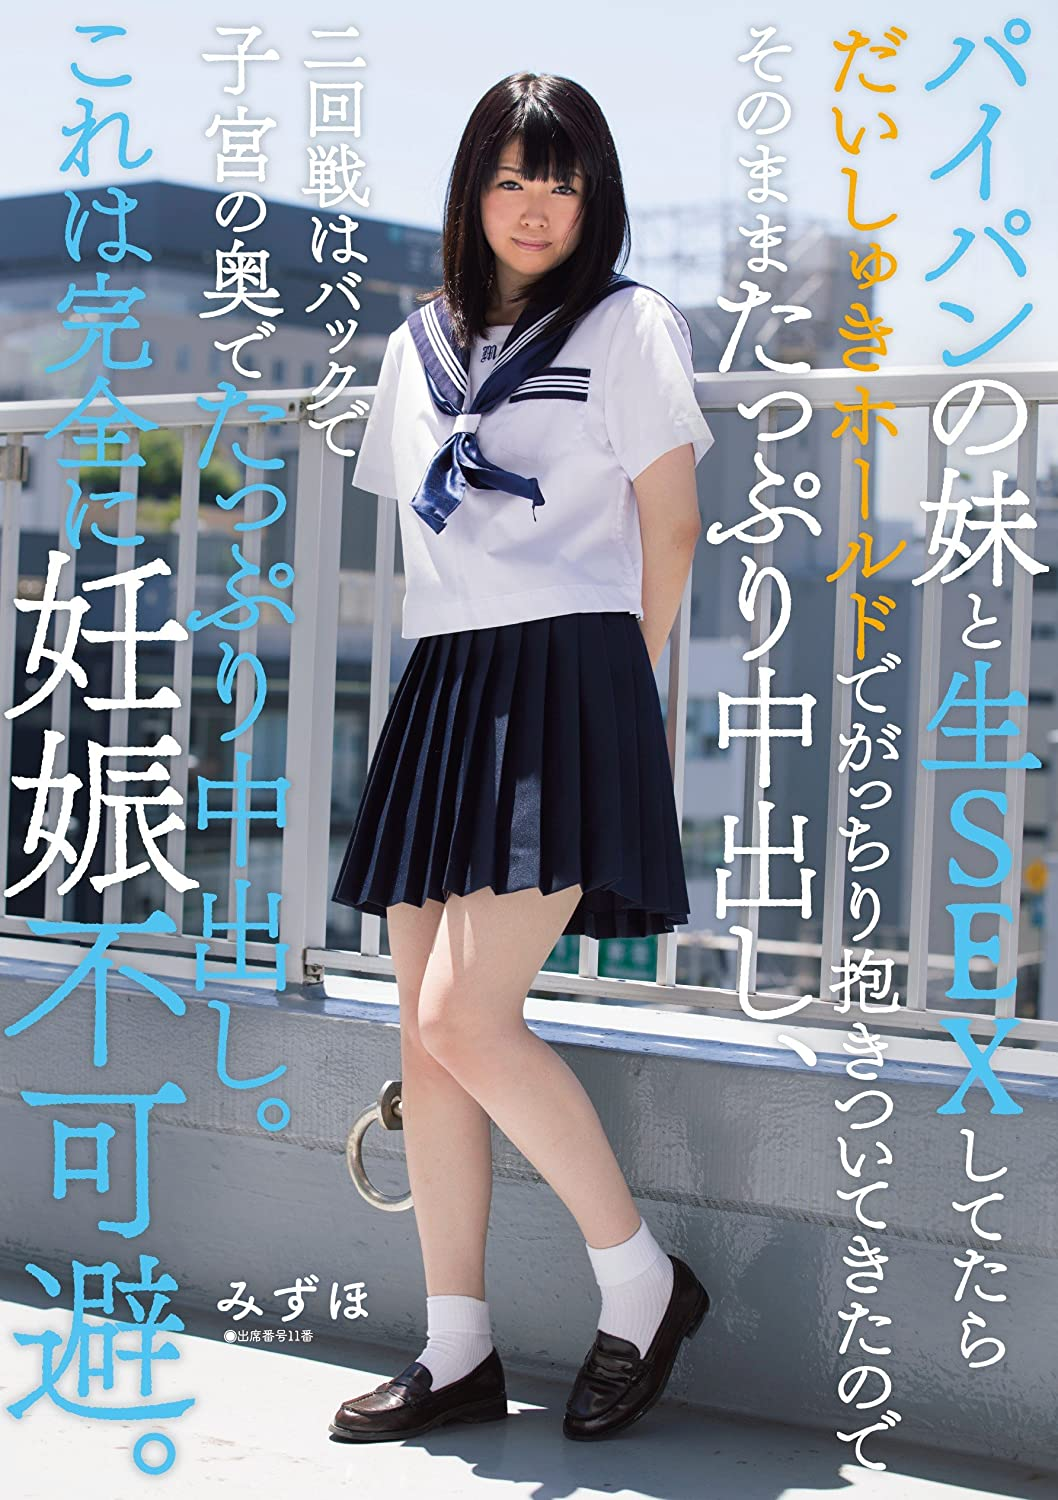 Amazon.com: JAPANESE ADULT CONTENT (Pixelated) When I was